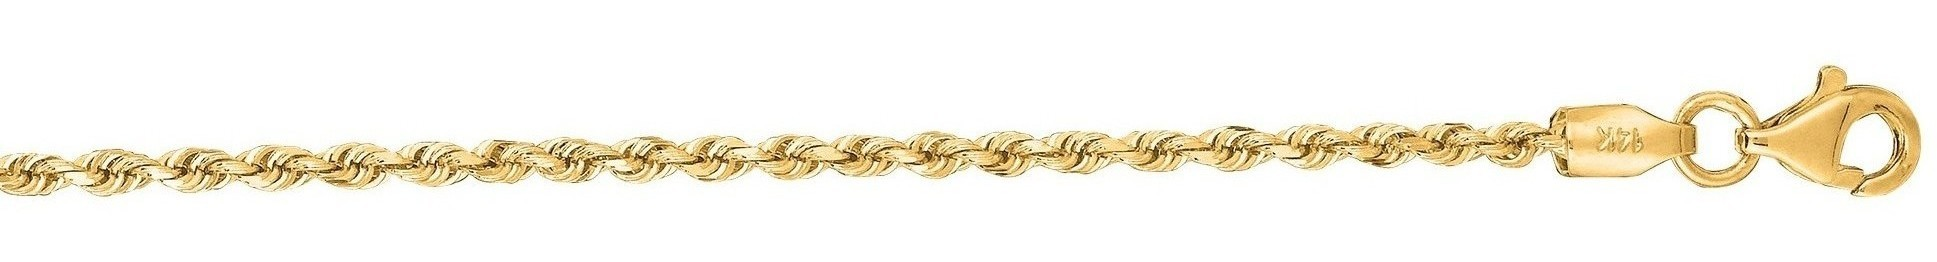 "20"" 14K Yellow Gold 2.0mm (0.08"") Polished Solid Diamond Cut Royal Rope Chain w/ Pear Shape Clasp"